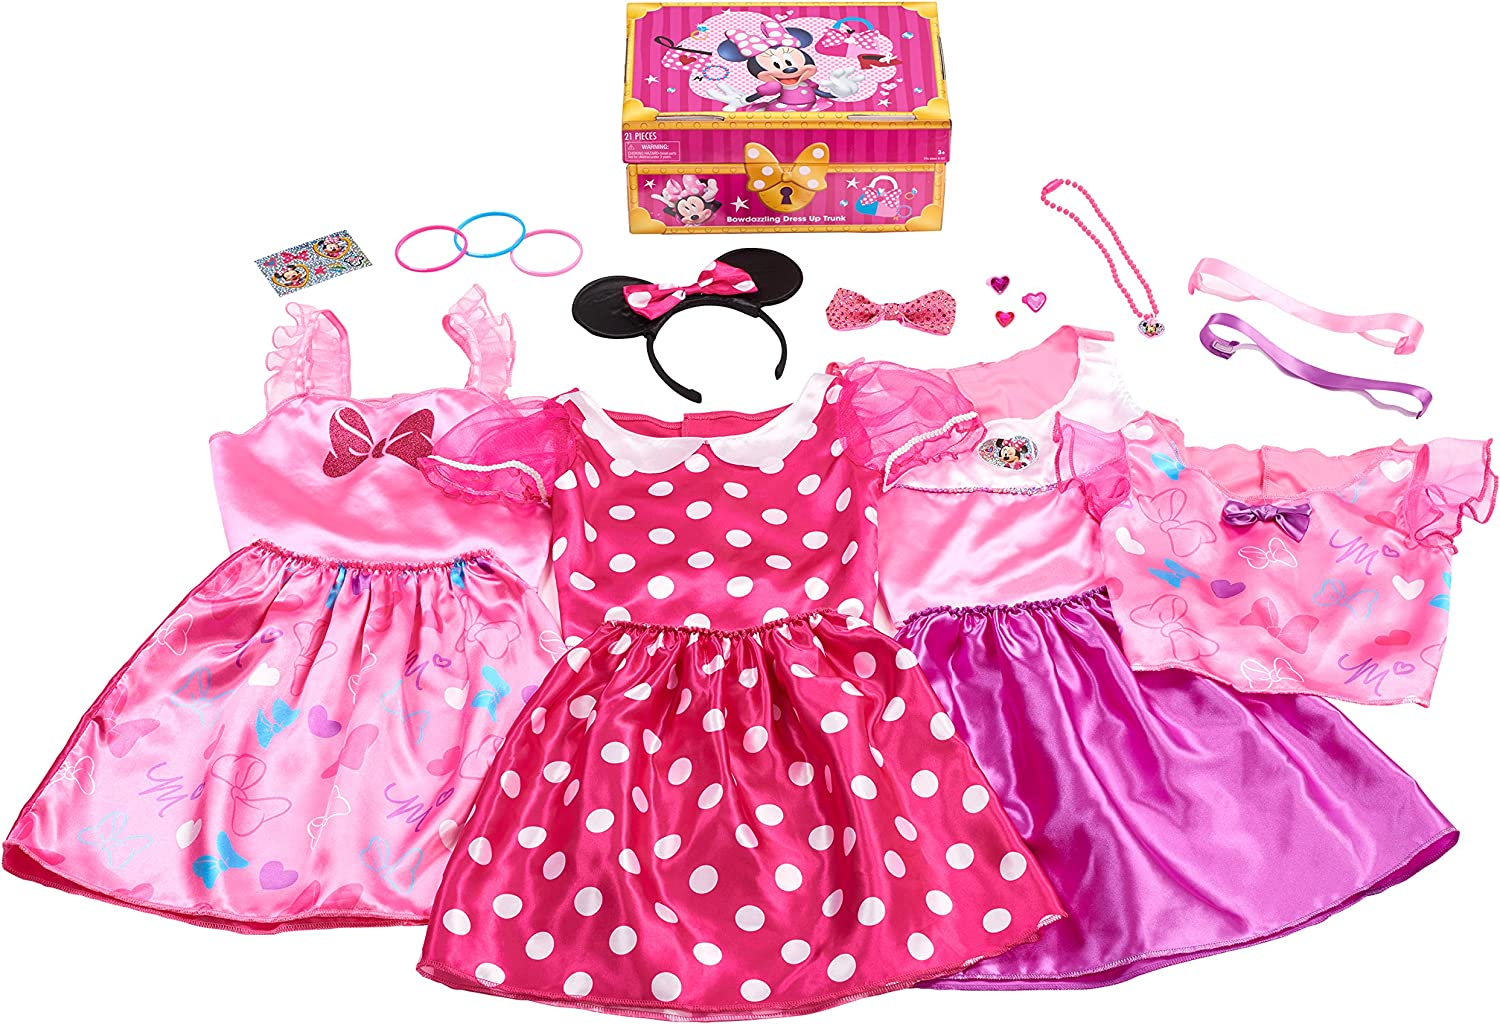 Toddler Girls pink Minnie Mouse Disney shorts new size 4